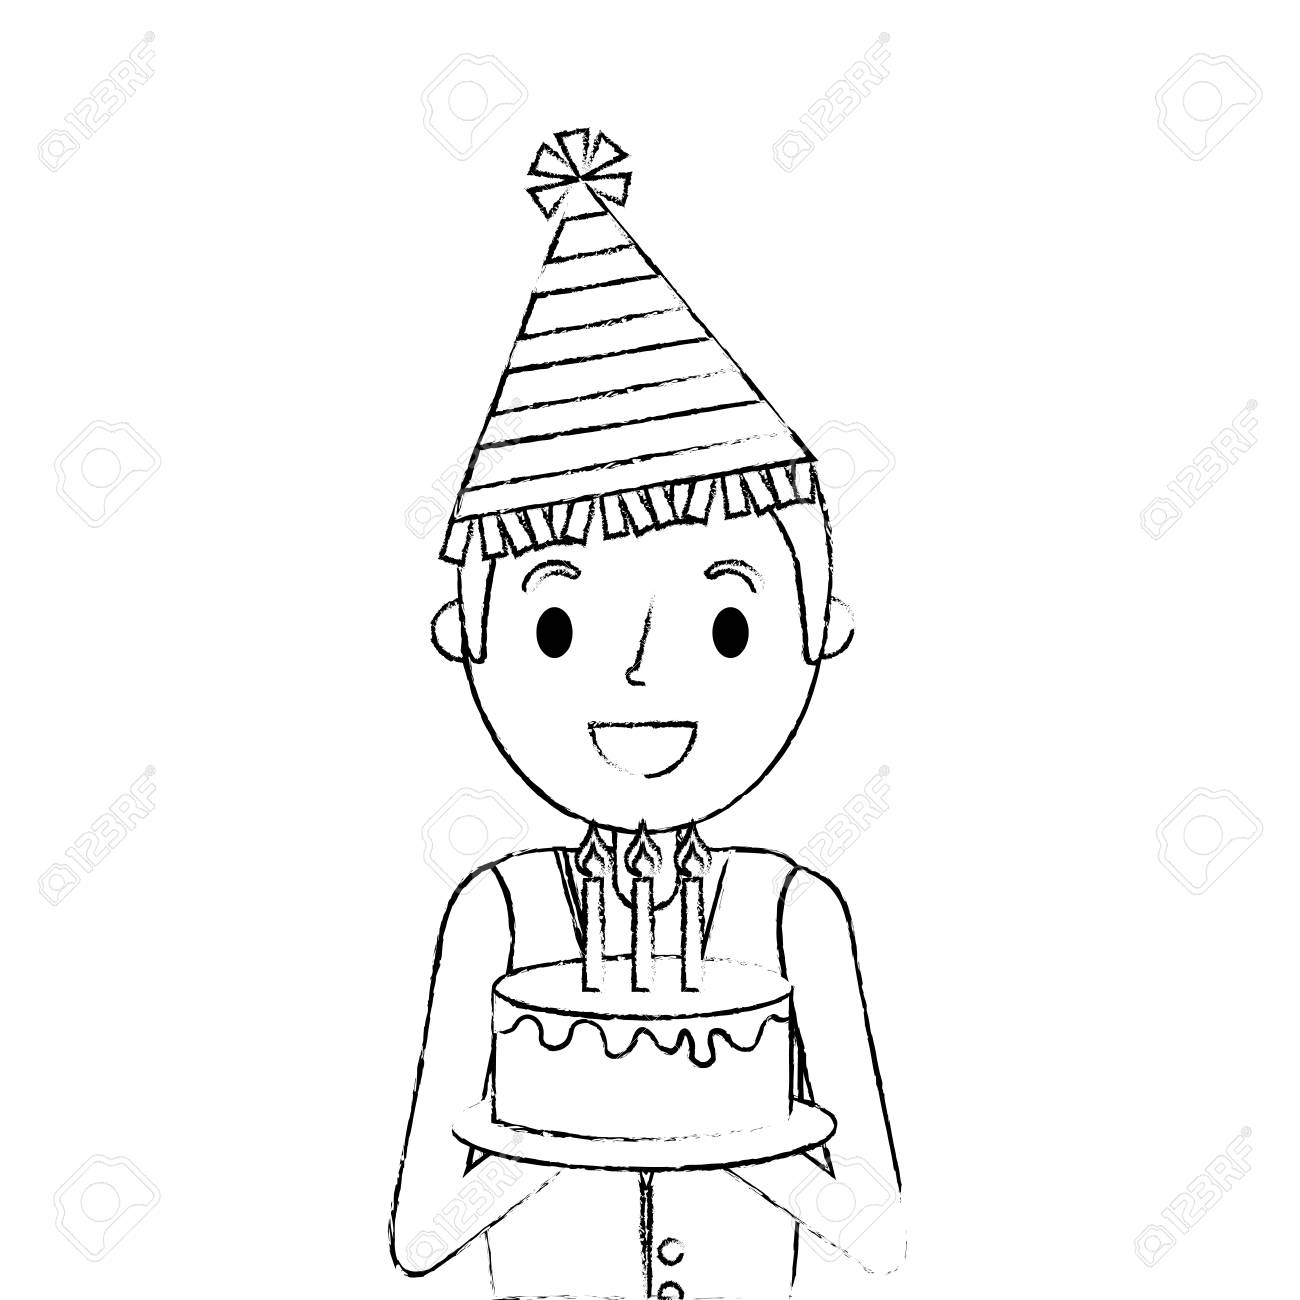 Party Hat Clipart Black And White Happy Man Holding Birthday Cake Wearing Party Hat Vector Illustration